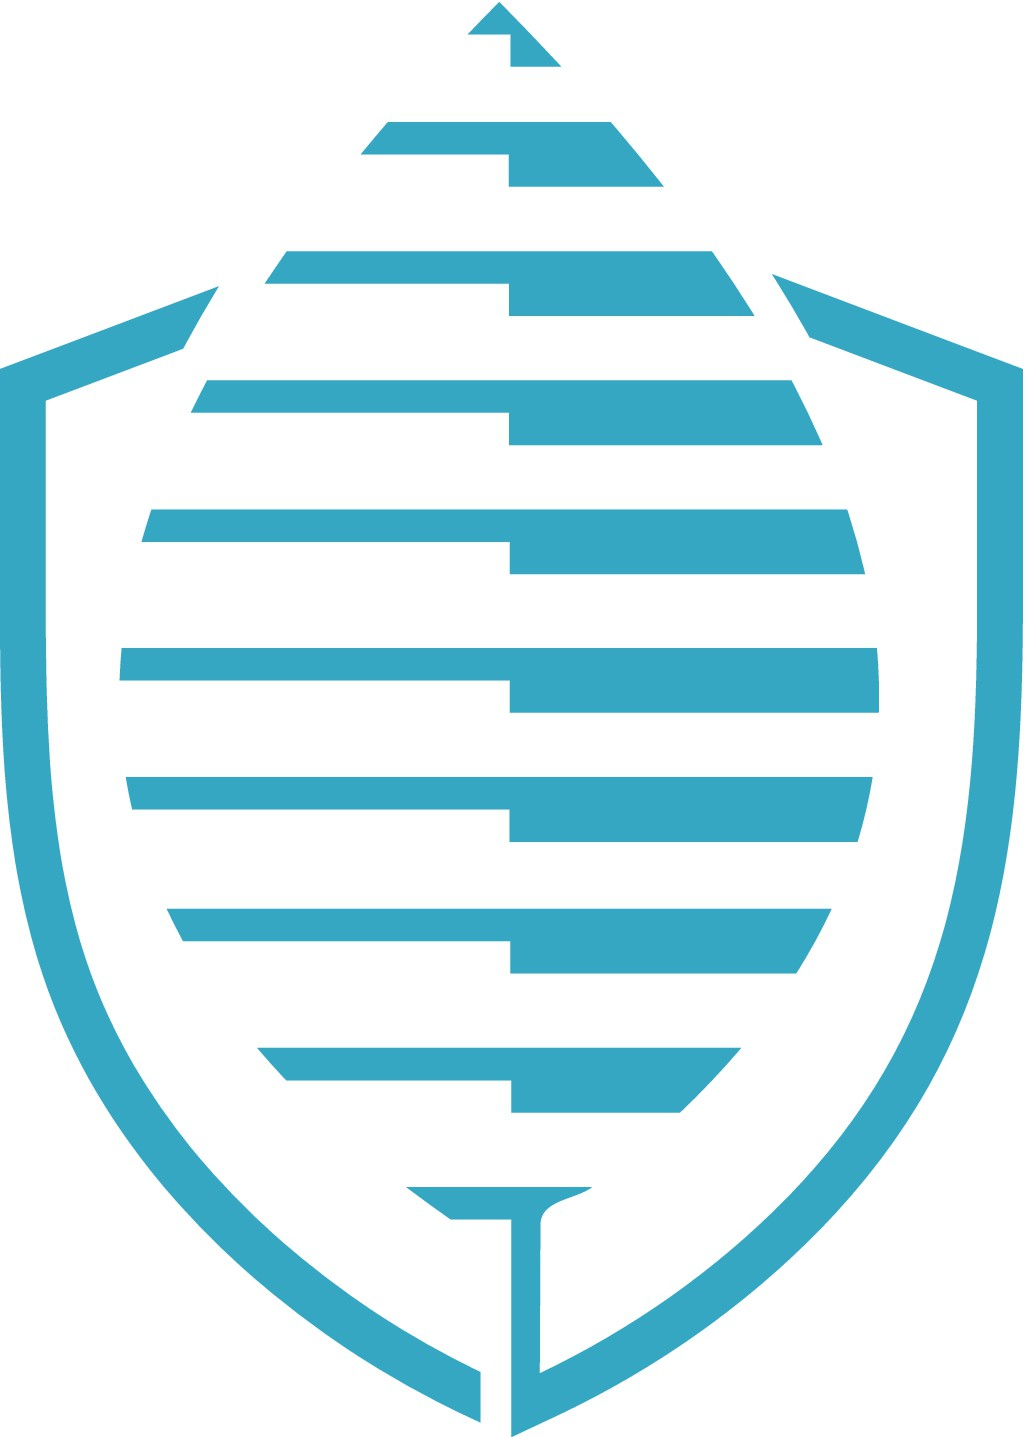 Design a logo for a cybersecurity education company!